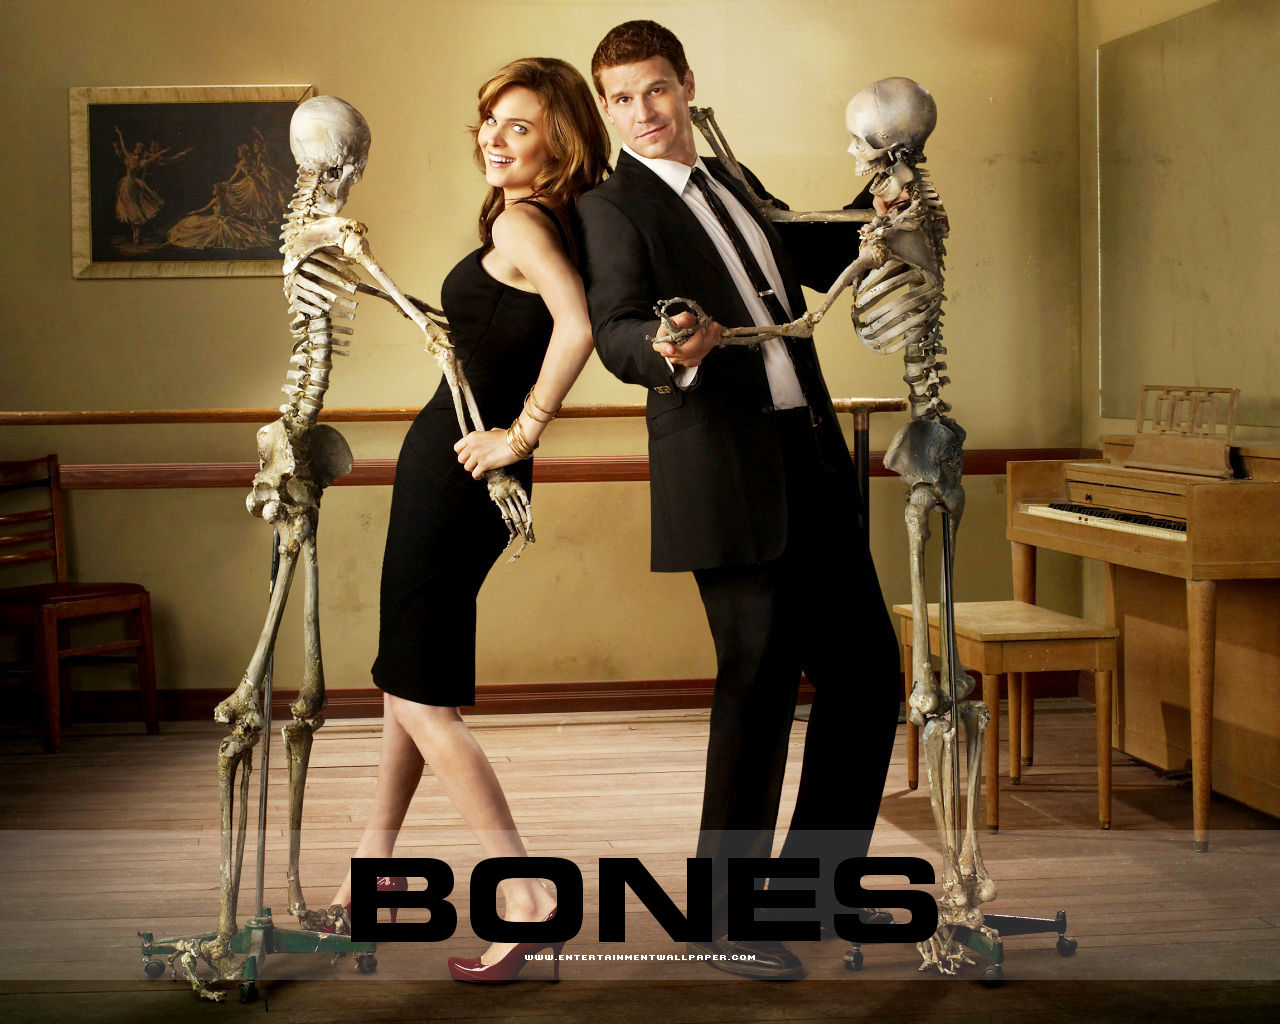 1280x1024 - Bones Wallpapers 6